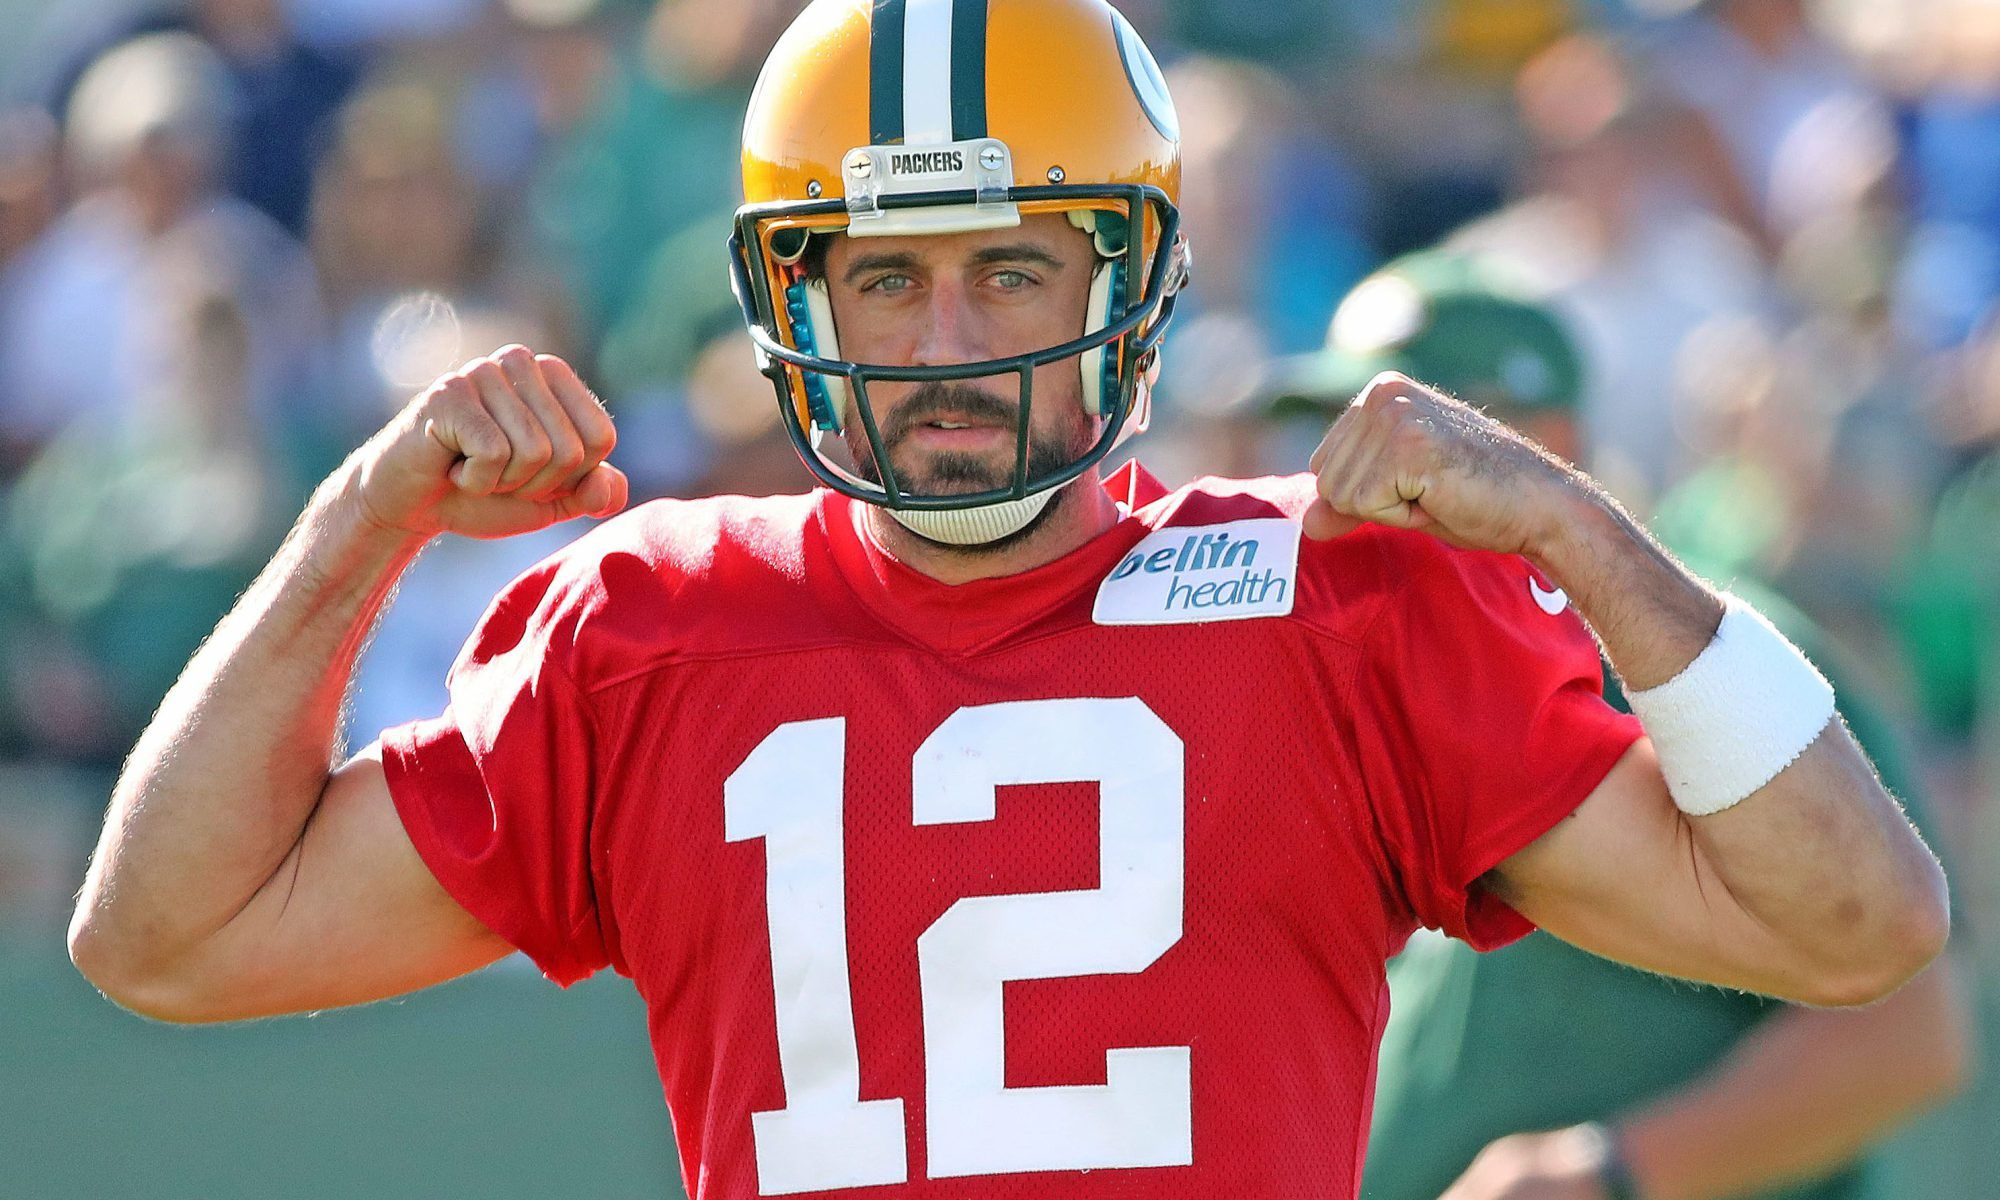 Don T Call It A Guarantee But Aaron Rodgers Plans On Mvp Season In 2018 Aaron Rodgers Mvp Nfl